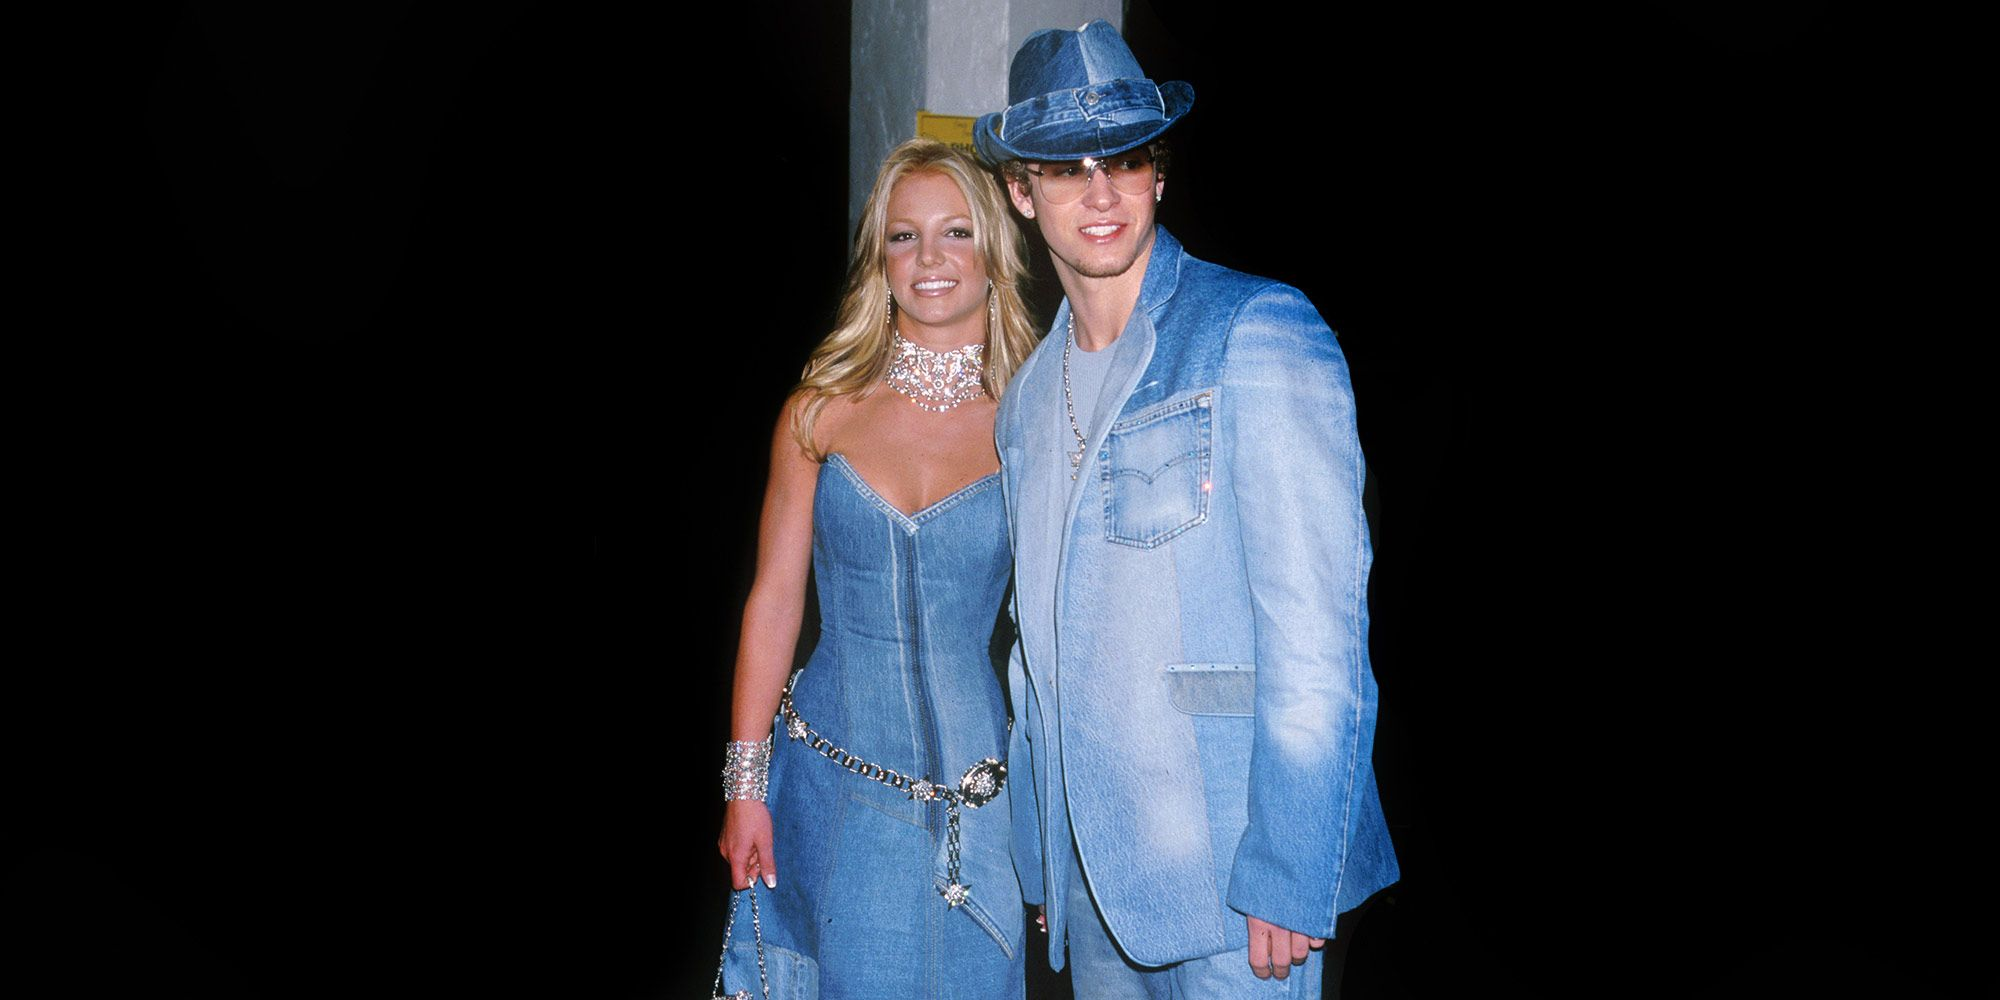 Justin Timberlake Finally Addressed The Britney Spears Double Denim Debacle